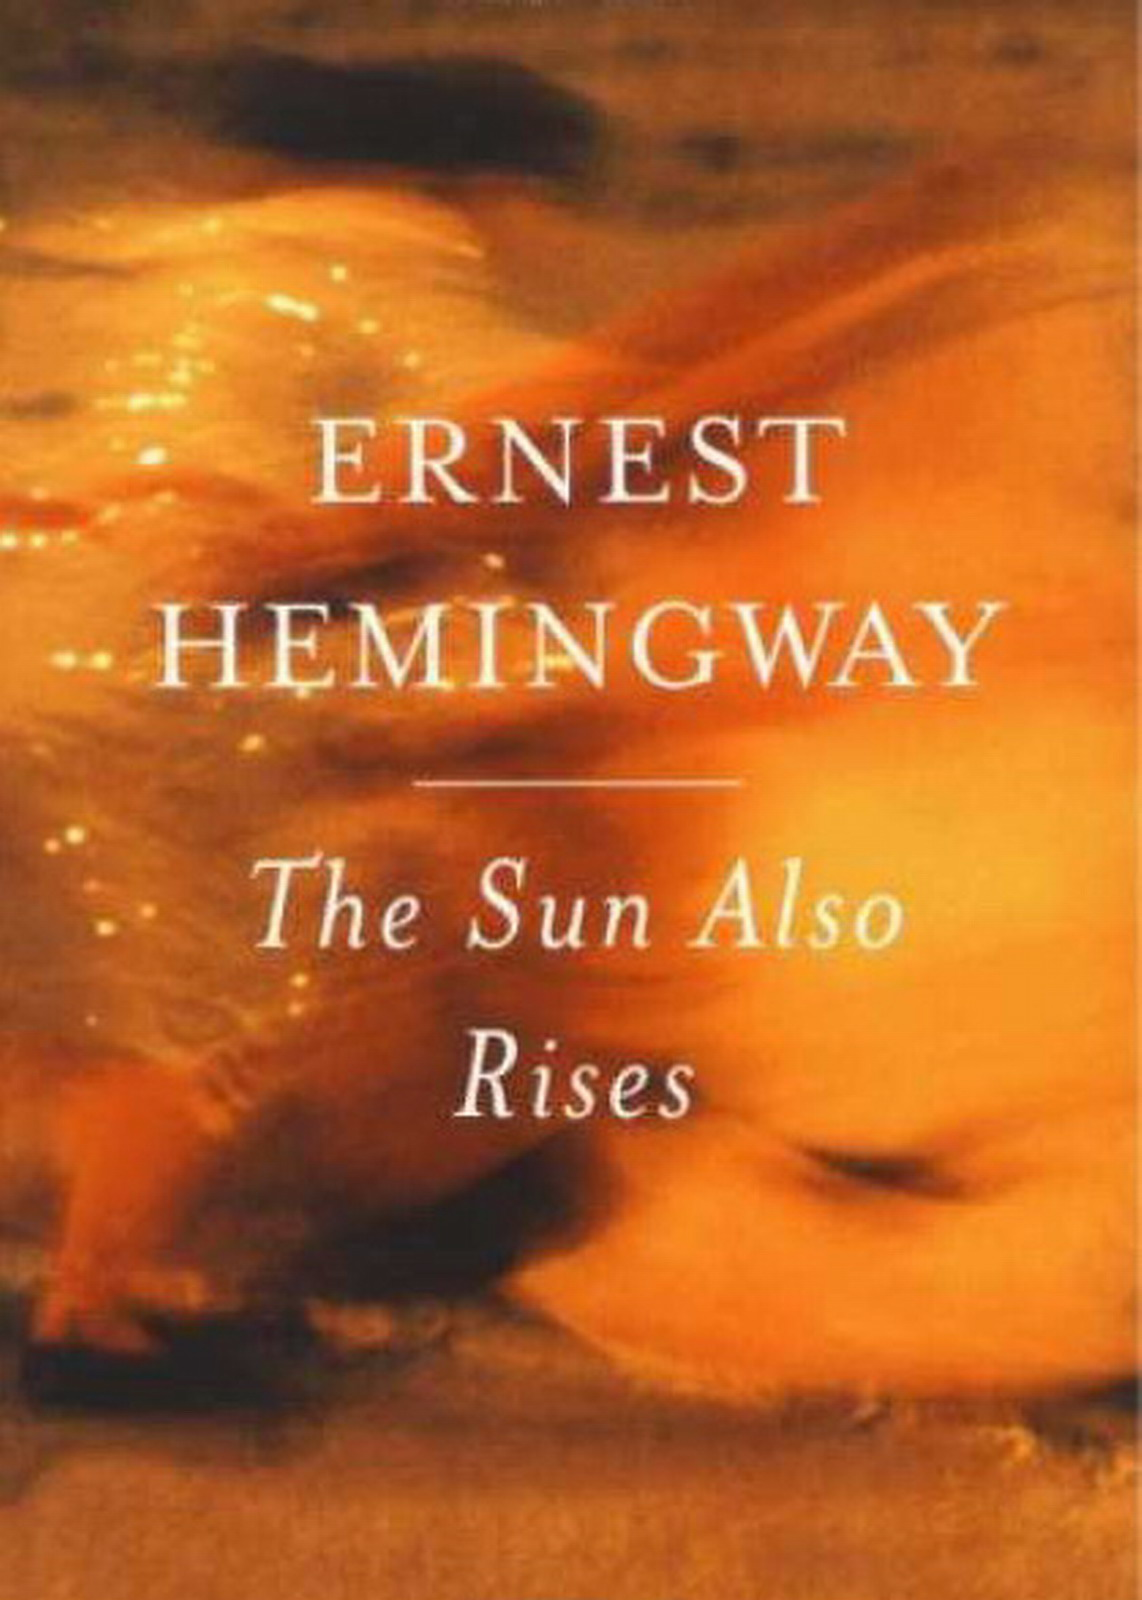 an analysis of hemingways the sun also rises In the sun also rises, we can look to paris and spain as the two most important settings in the novel in paris, the depiction of the life there presents debauchery, vagueness of purpose, and a.